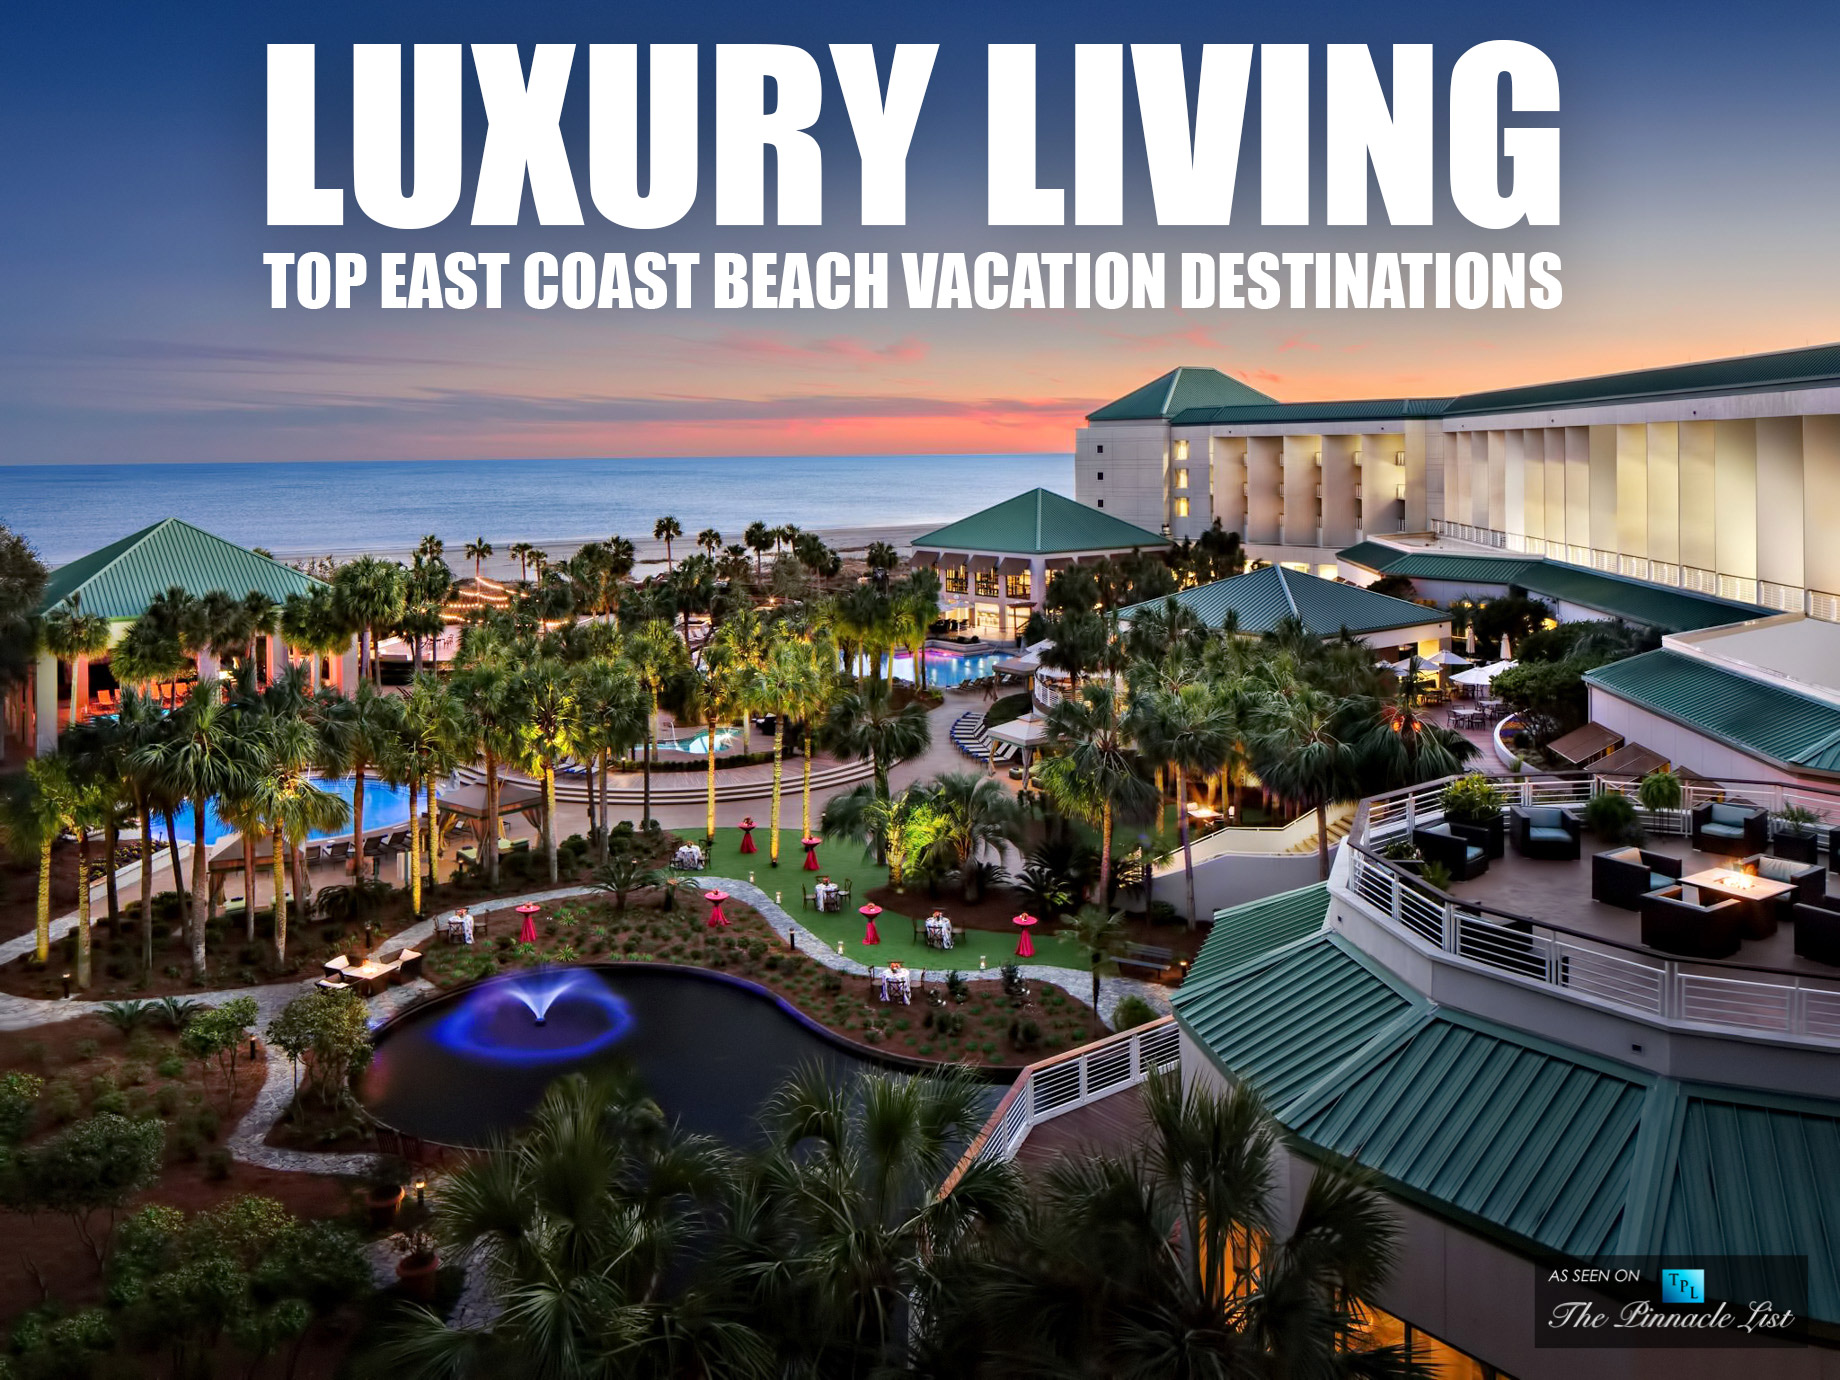 Luxury Living - Top East Coast Beach Vacation Destinations